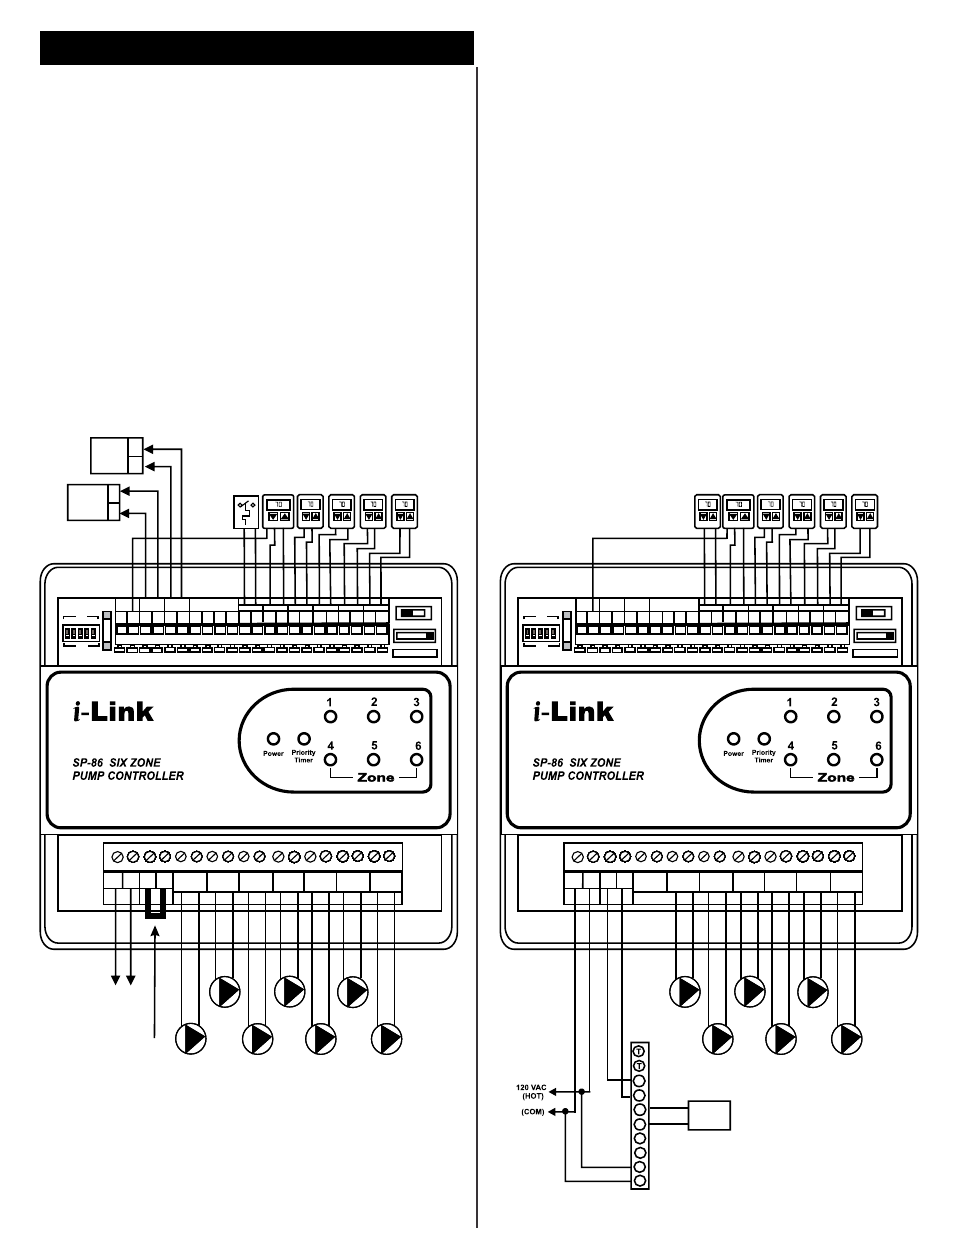 Operation And Typical Wiring Diagrams  Jumper Placement